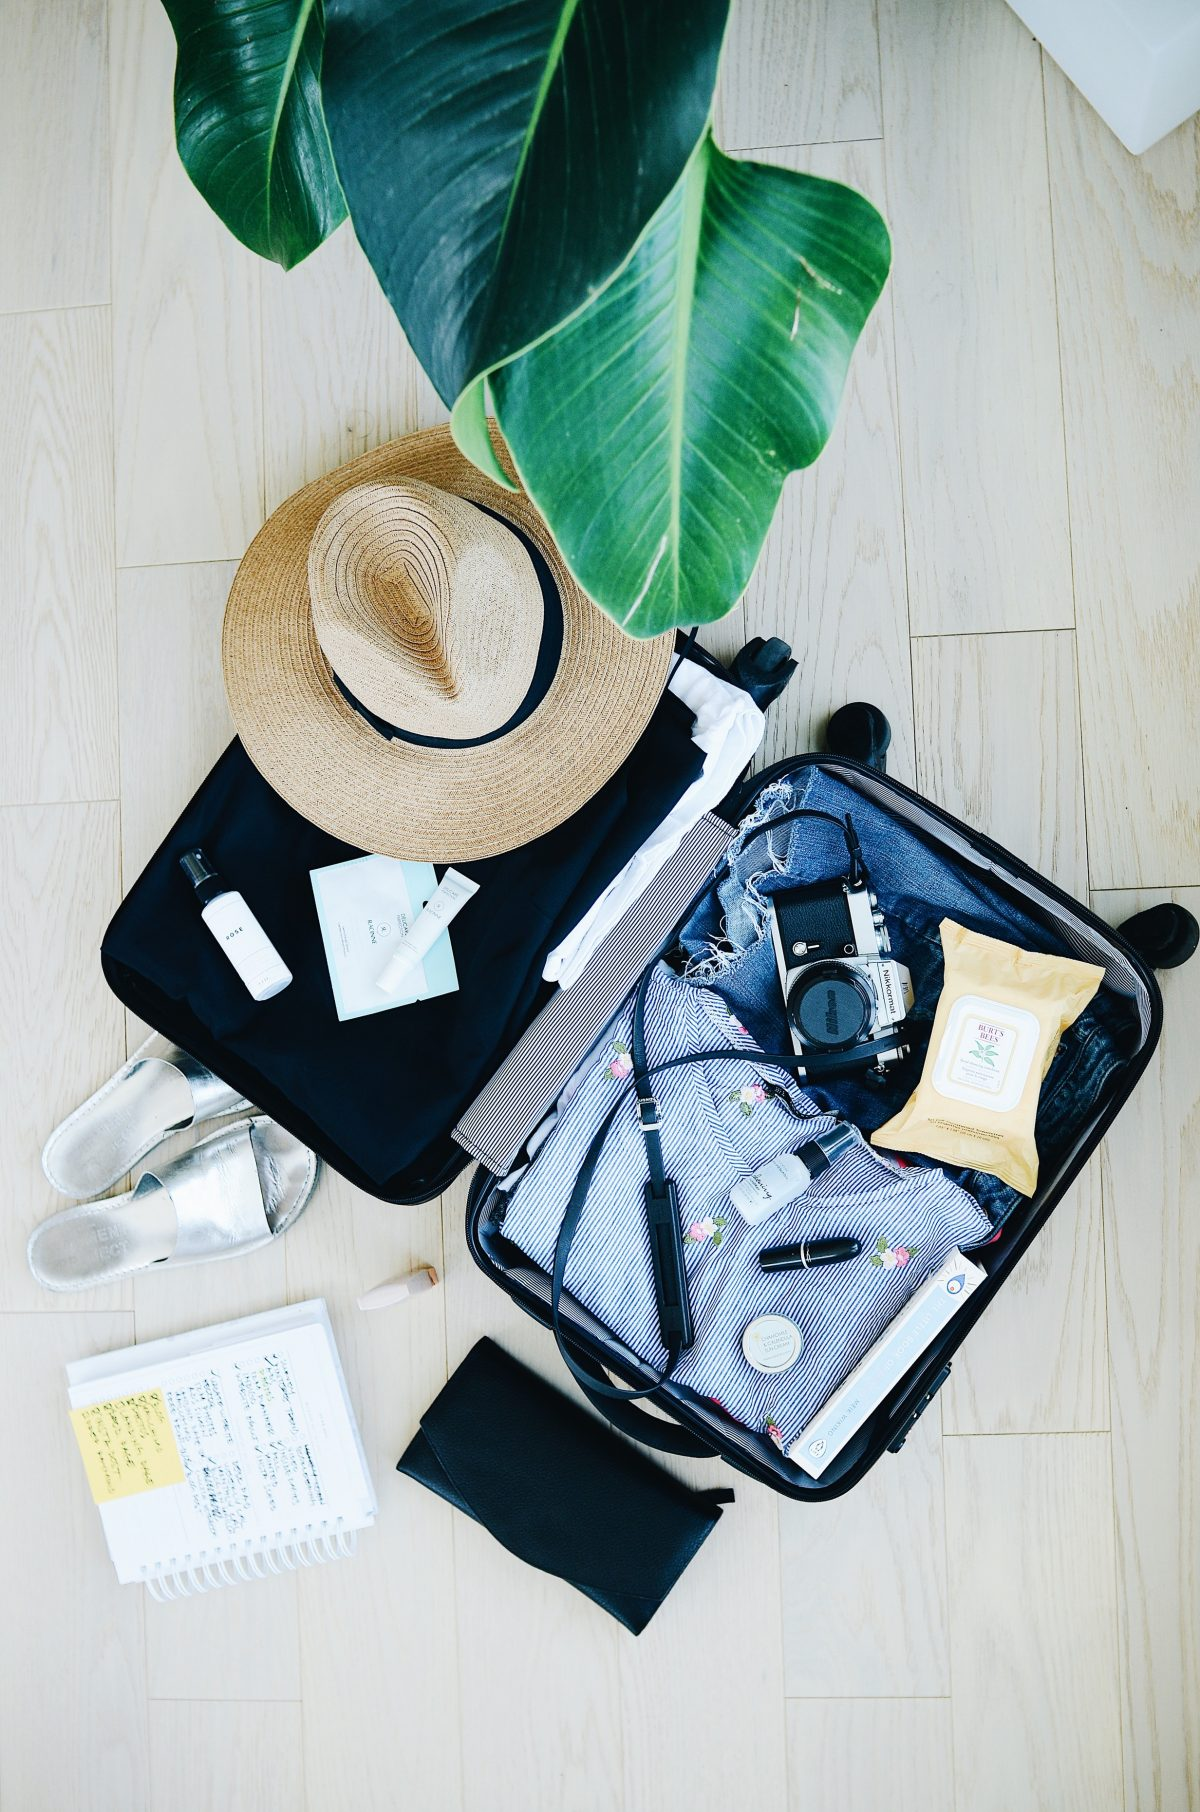 8 Fantastic Short Term Luggage Storage Options for Layovers